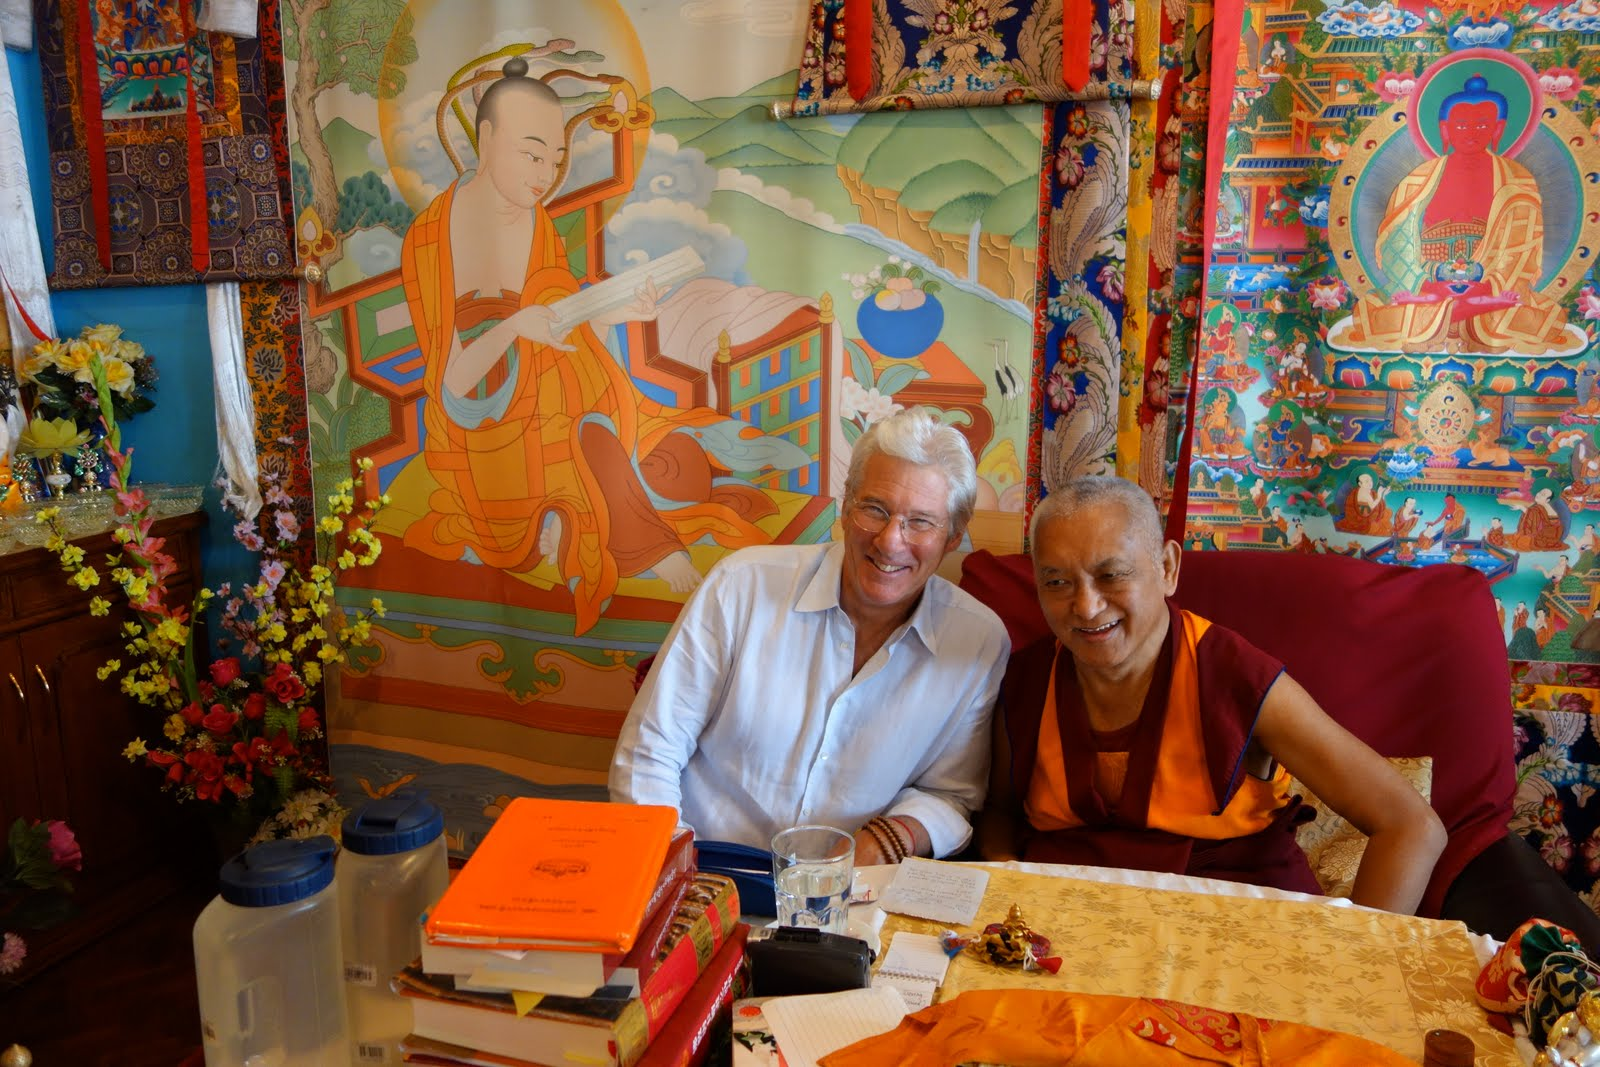 Rinpoche and Richard Gere in Kopan where they had lunch together. Rinpoche was telling lots of old stories about meditators & Dharma practitioners. The stories went on for a long time, interspersed with lots of laughter. Photo by Ven. Roger Kunsang.